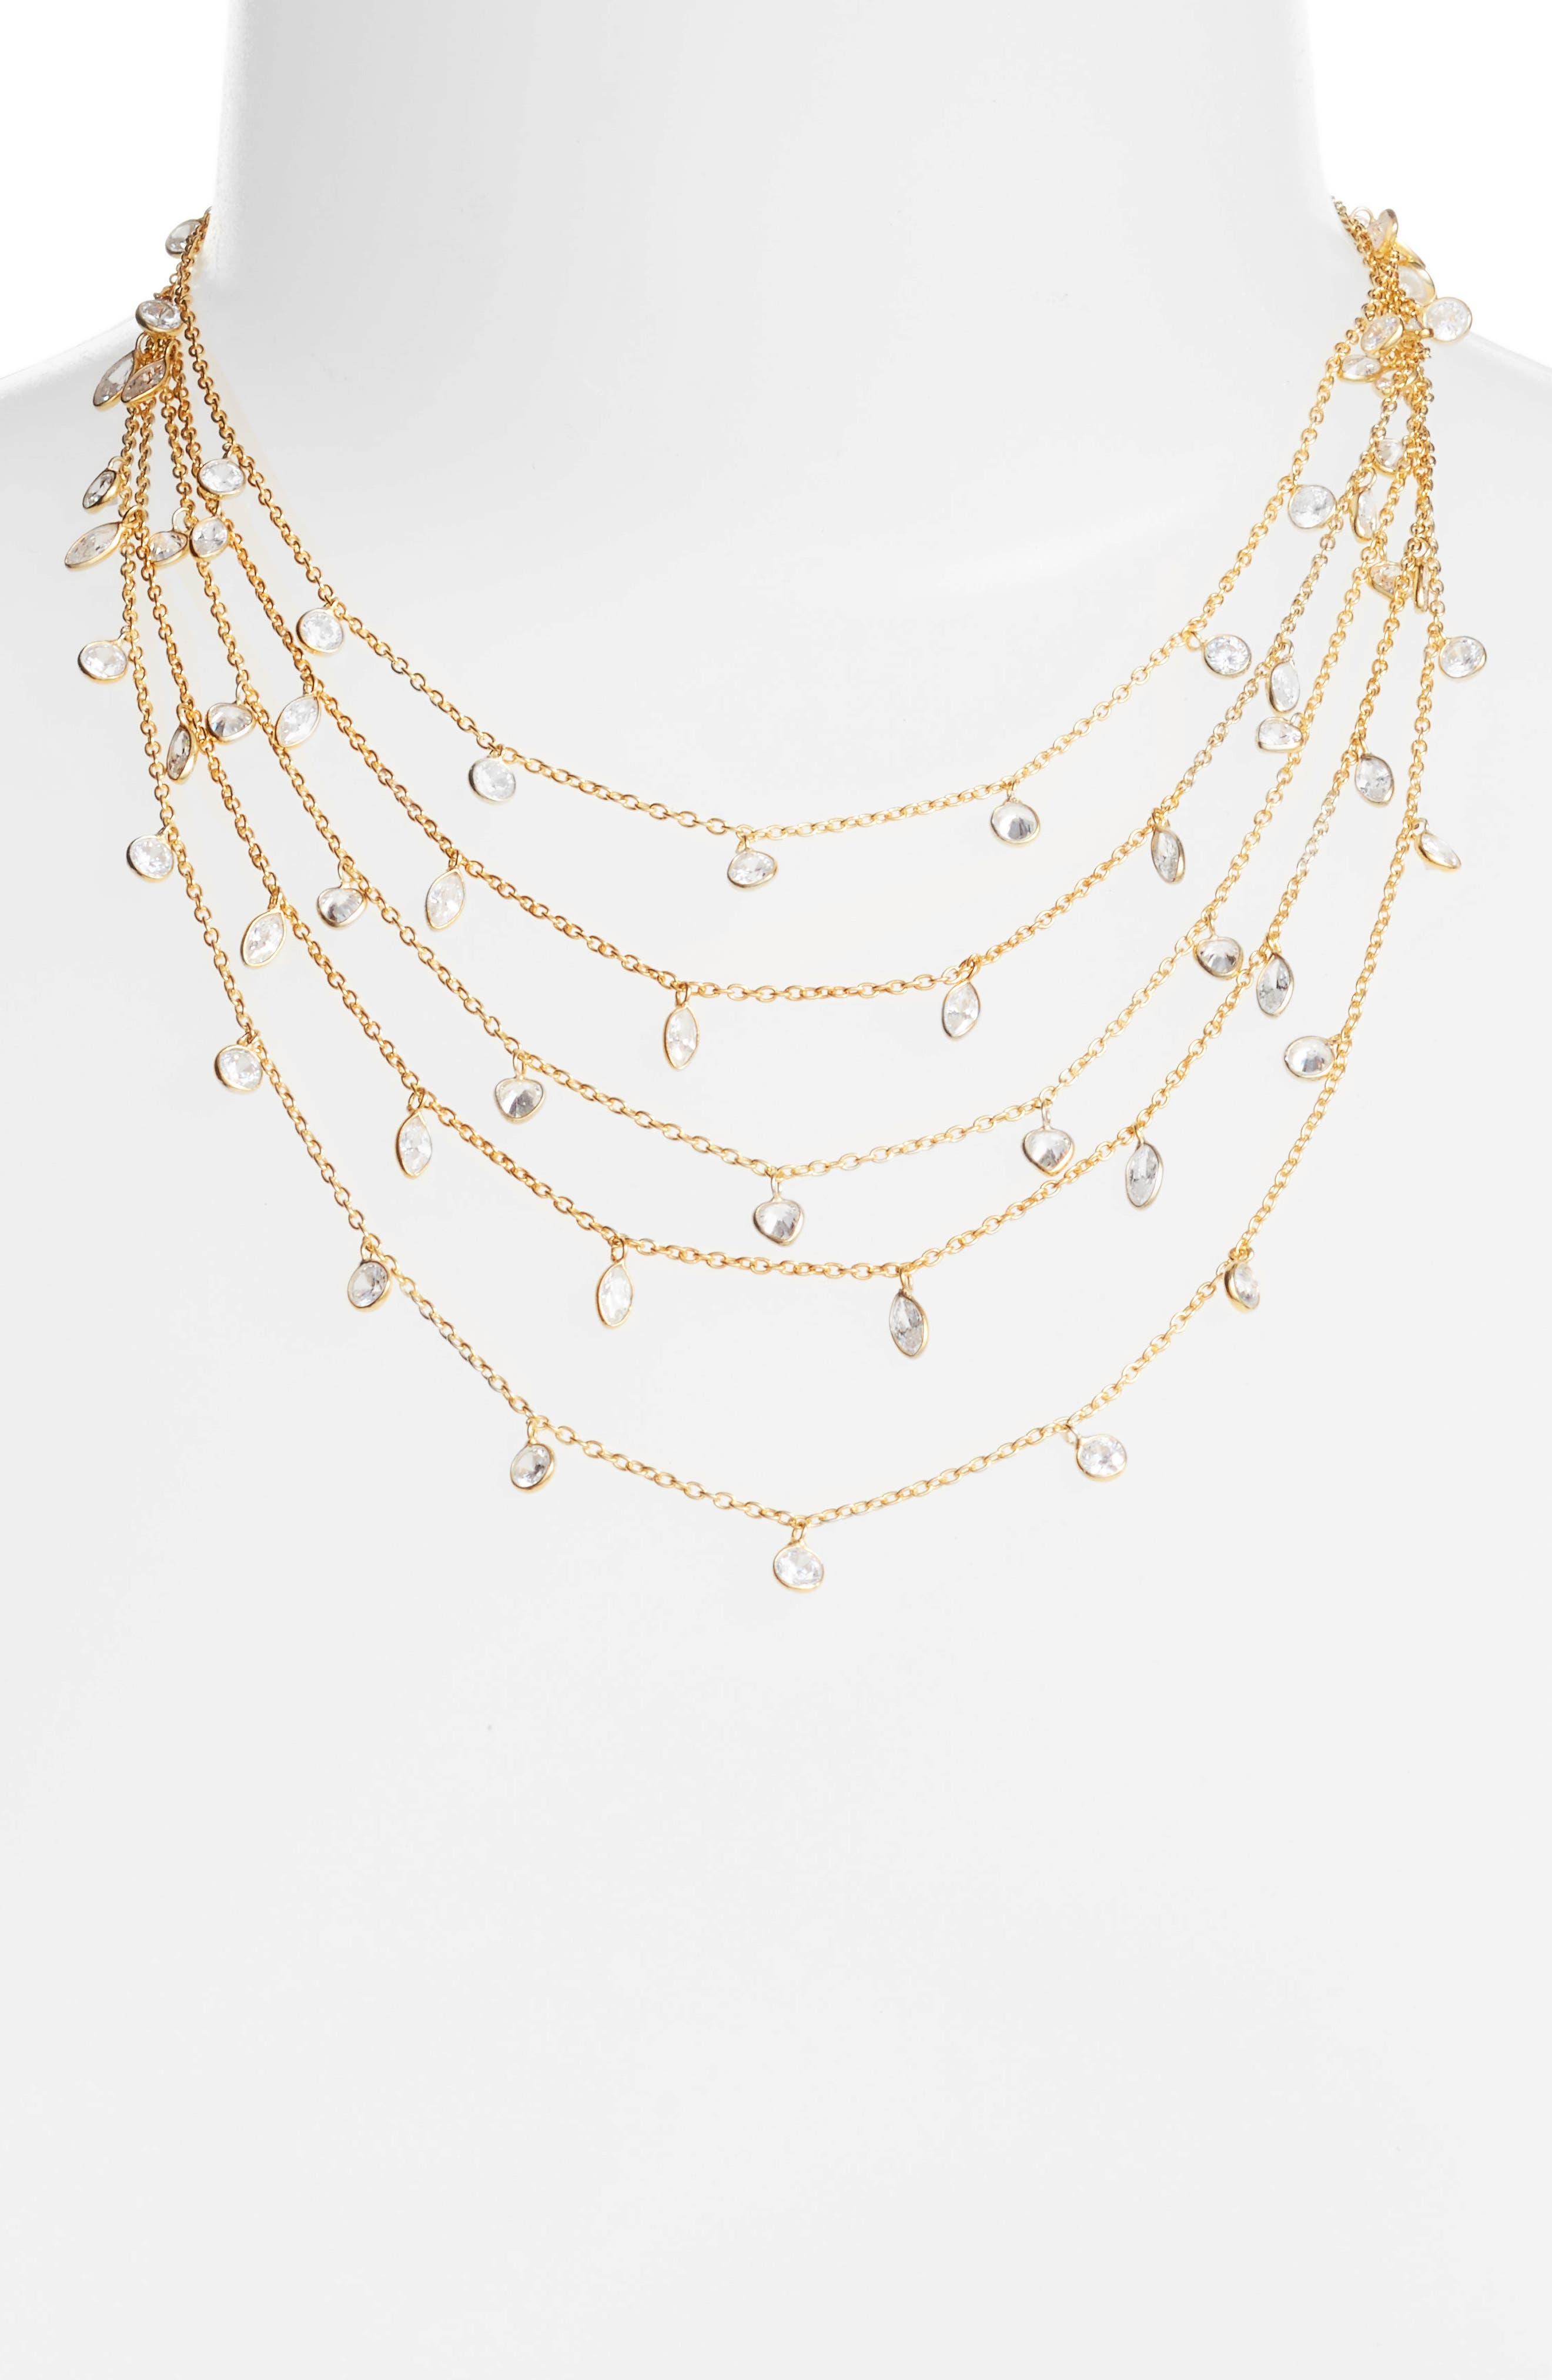 Multistrand Cubic Zirconia Necklace,                             Main thumbnail 1, color,                             Gold